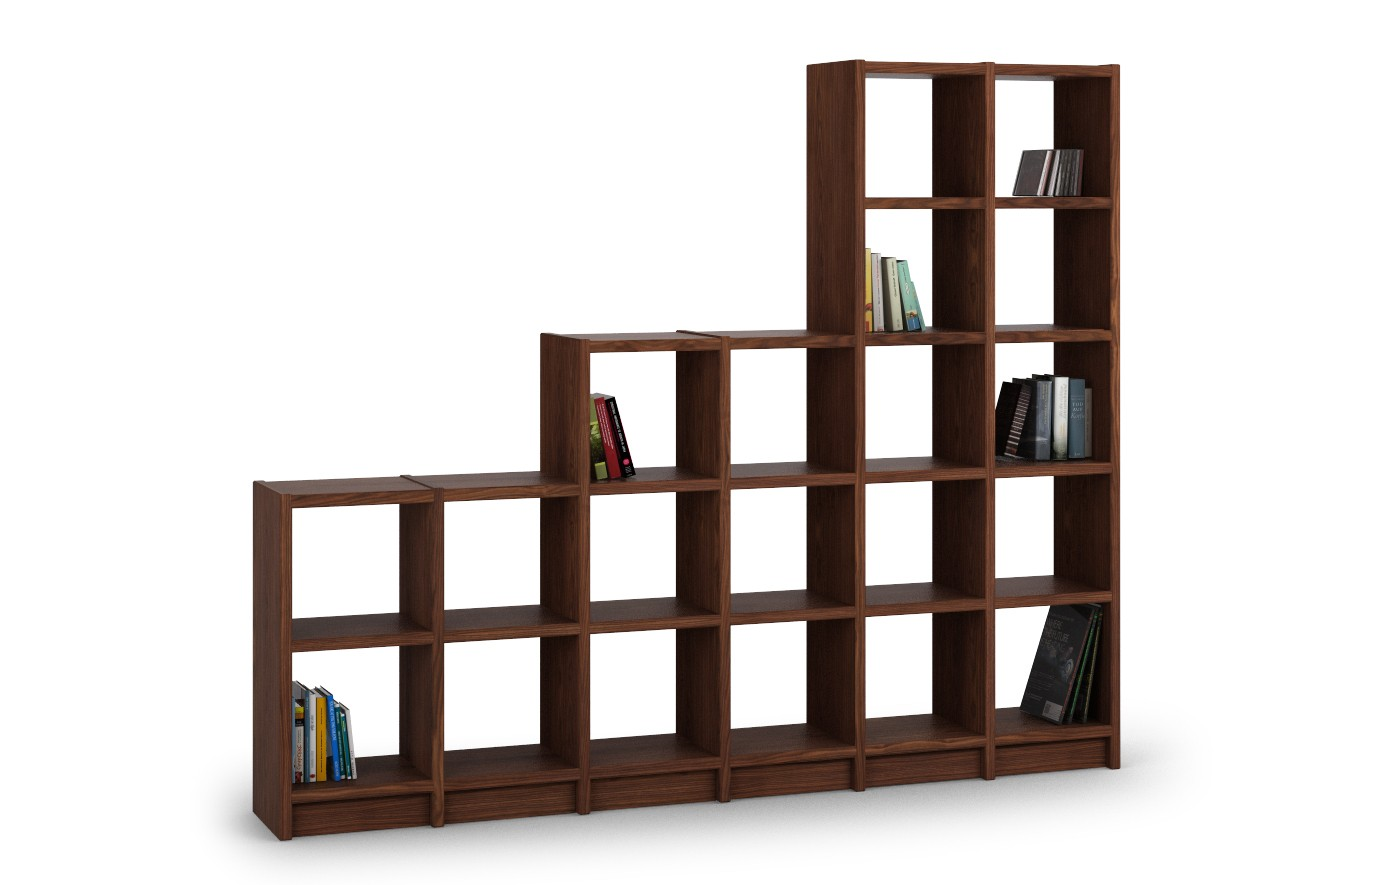 vcm regal dvd cd schrank rack m bel aufbewahrung holzregal standregal m bel anbauprogramm kern. Black Bedroom Furniture Sets. Home Design Ideas